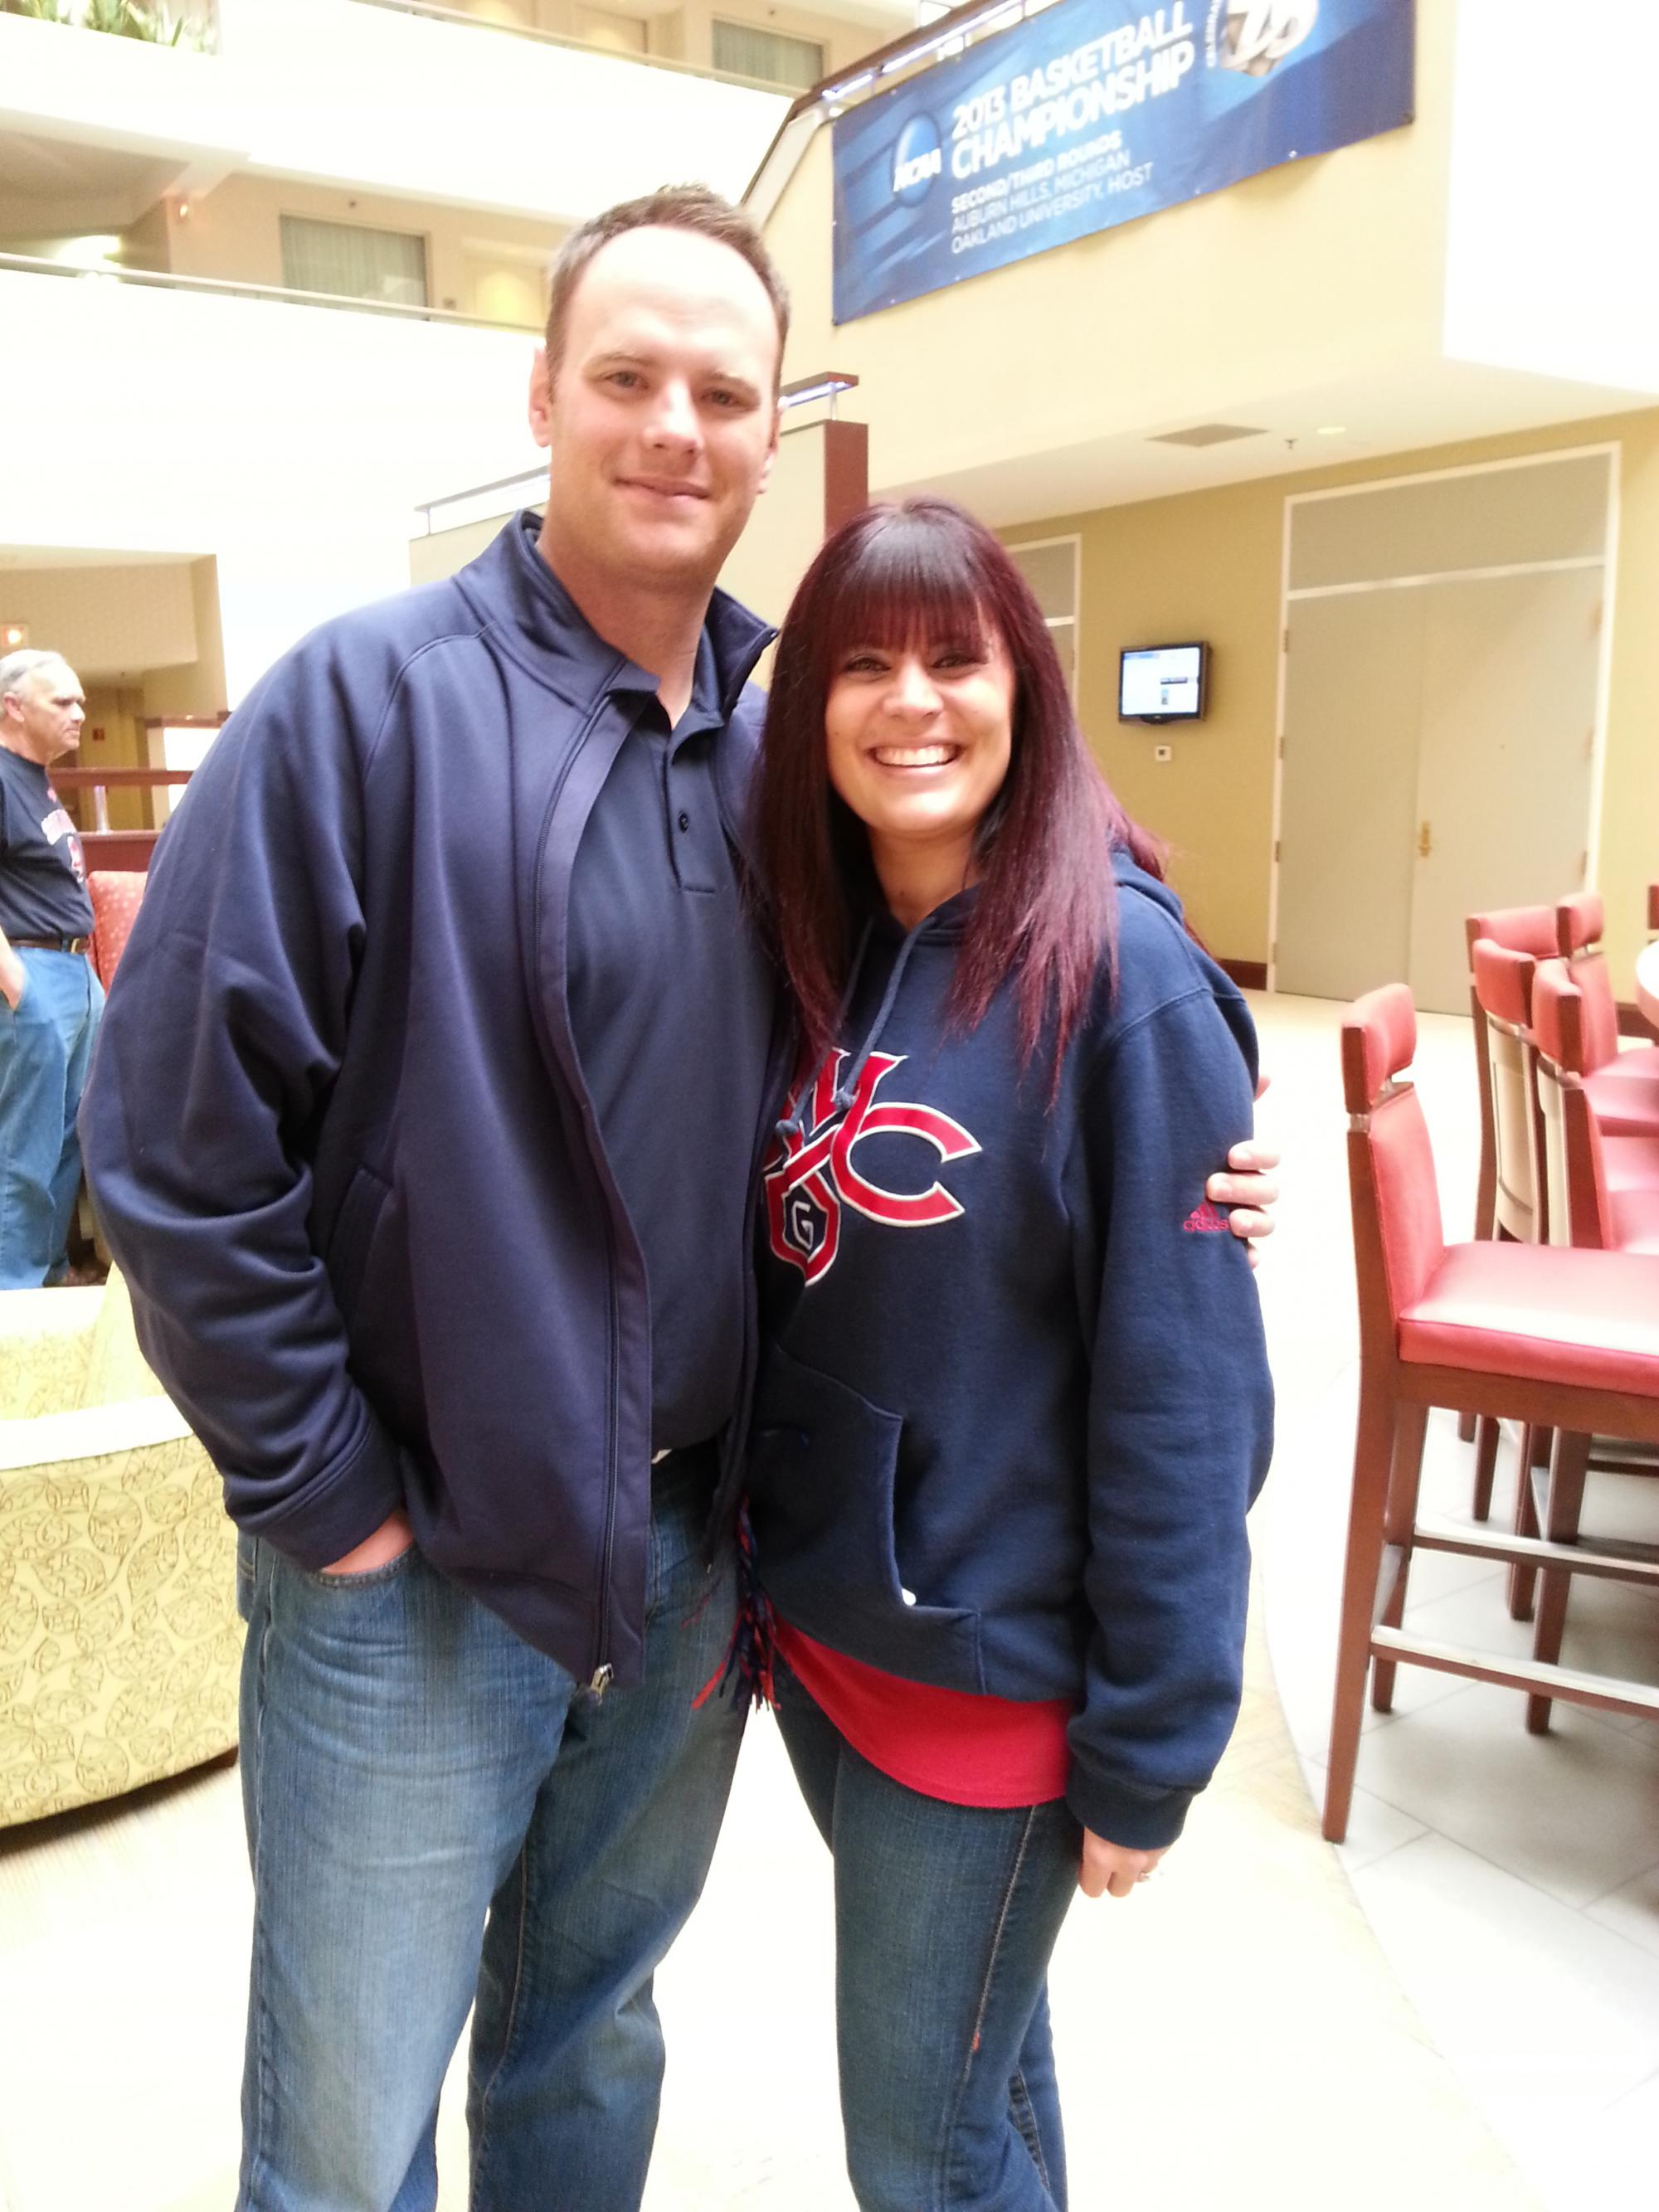 Dusty and Missy Broderick from San Ramon in Michigan at the pregame party